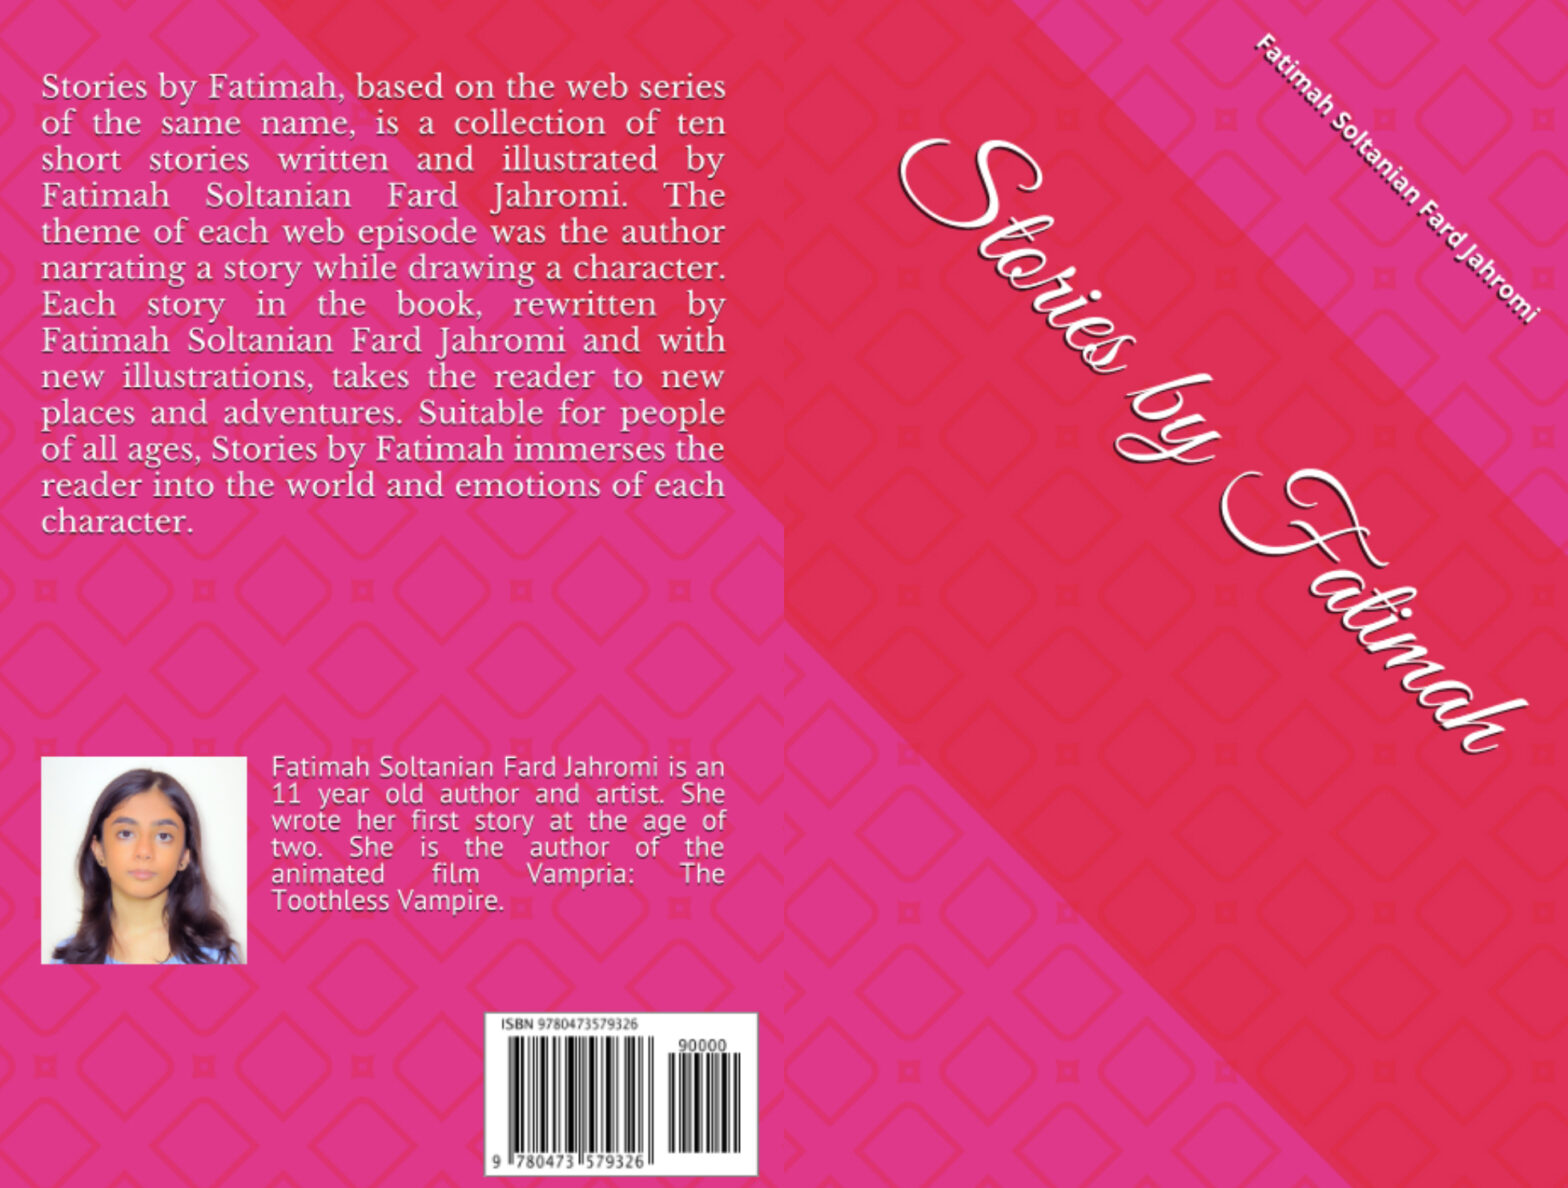 Stories By Fatimah by Fatimah Soltanian Fard Jahromi